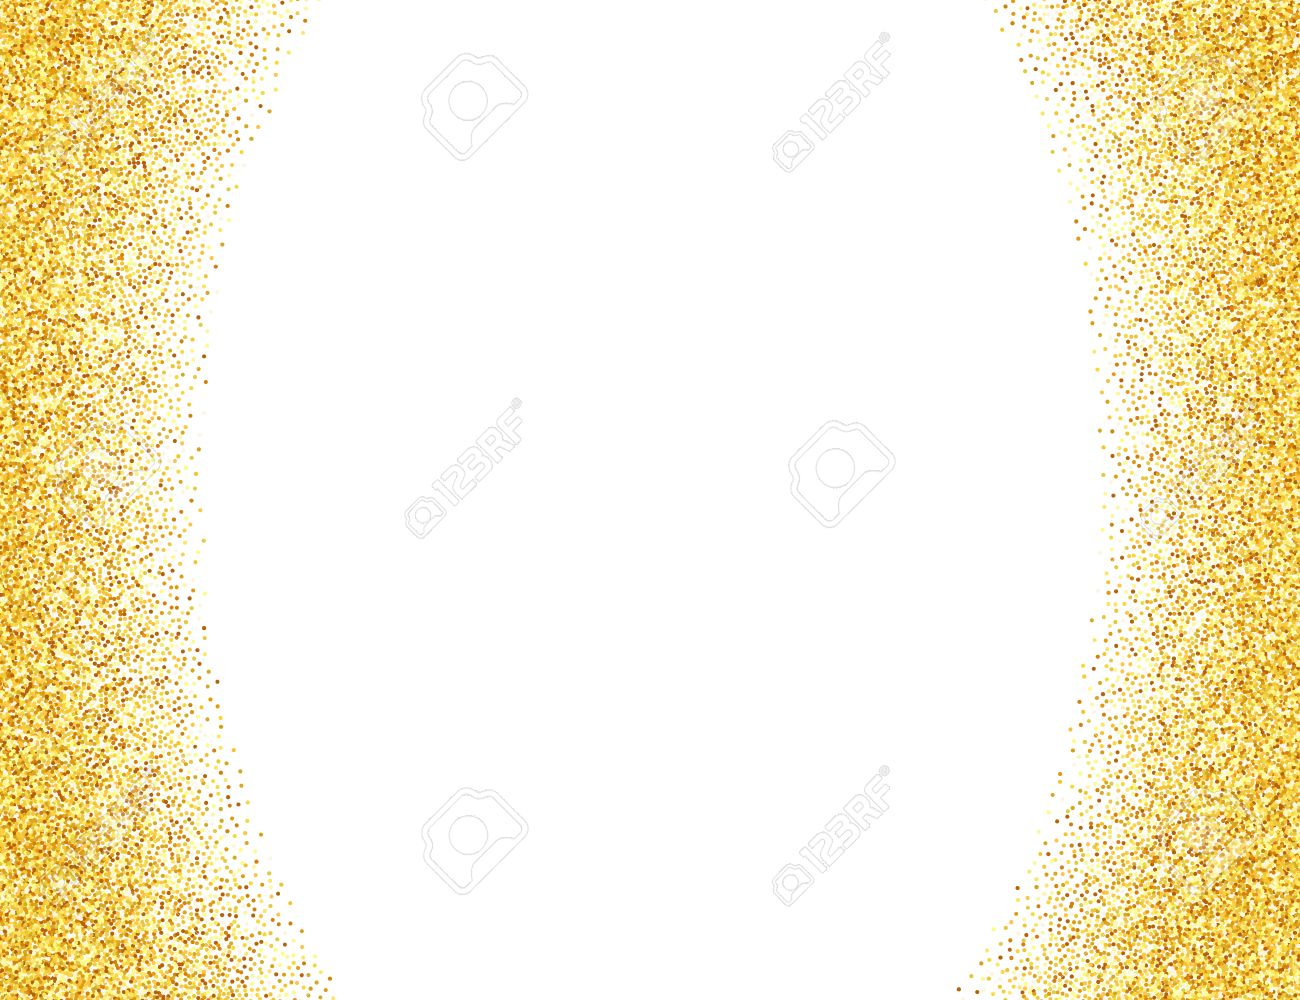 vector gold glitter abstract background golden sparkles on white